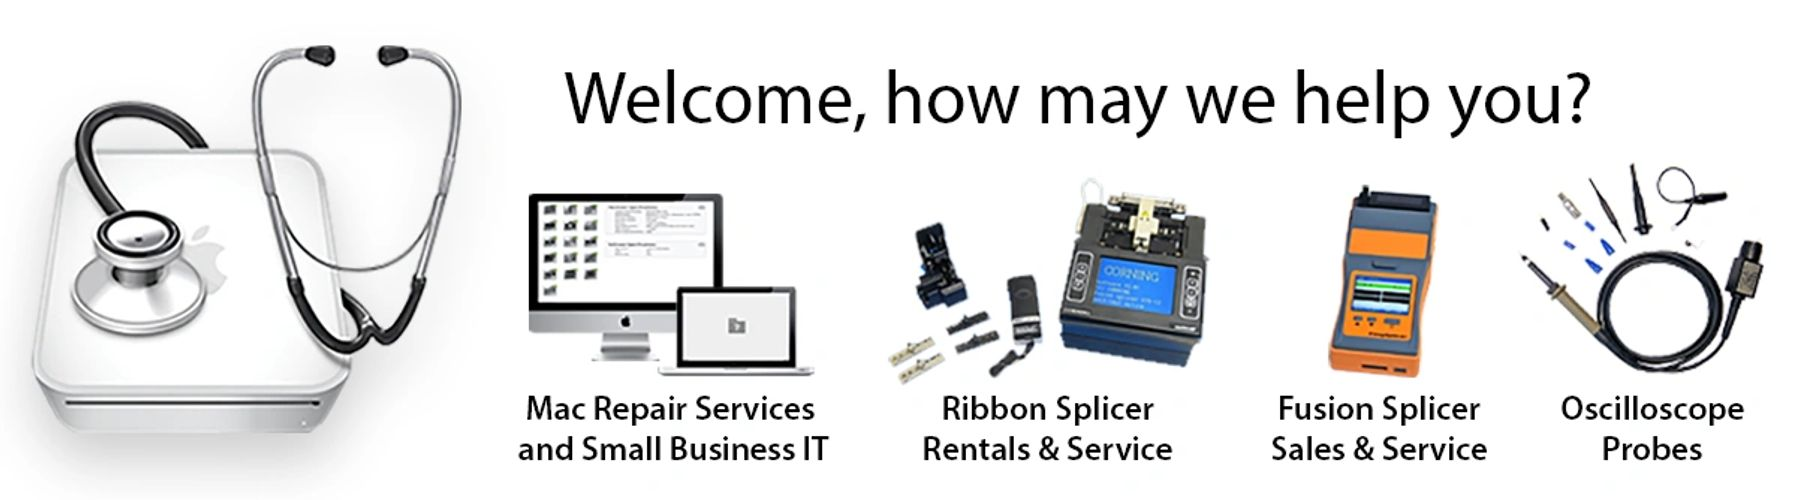 Tyrosys Apple Authorized Mac Repair Services Fusion Splicer Sales Service Rental Oscilloscope Probes